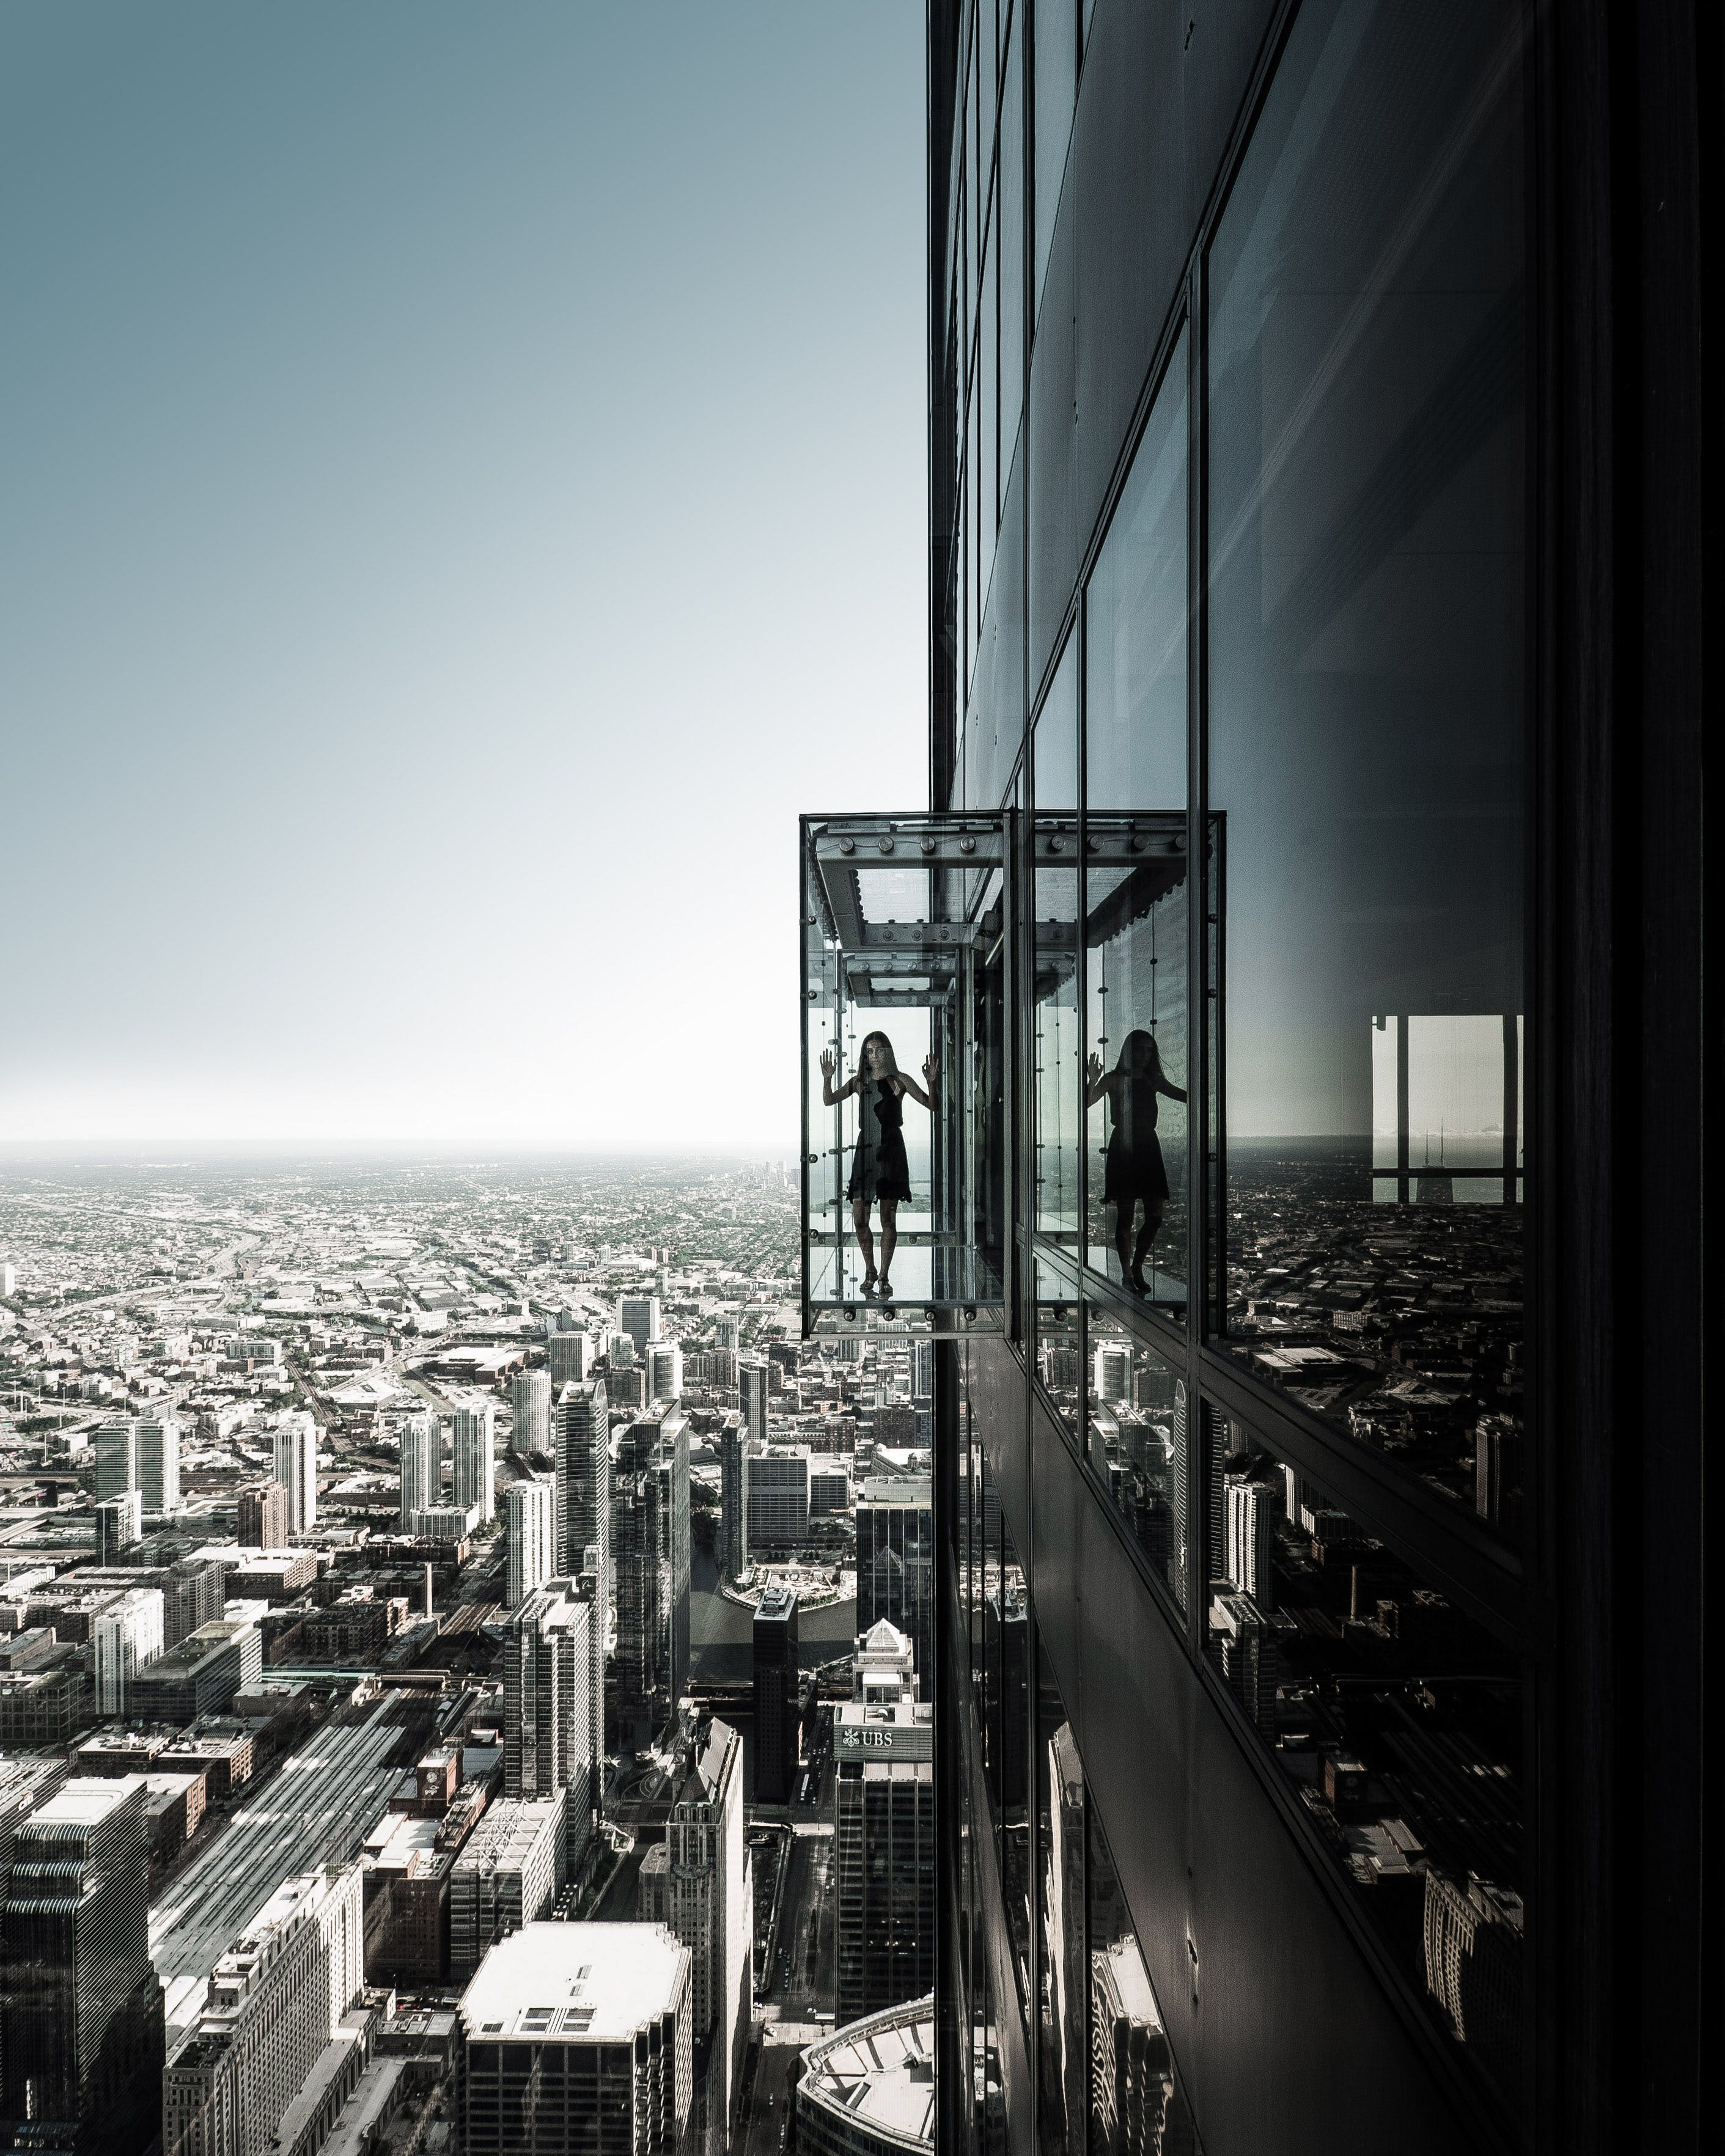 Grayscale Photo of Girl on Building Elevator